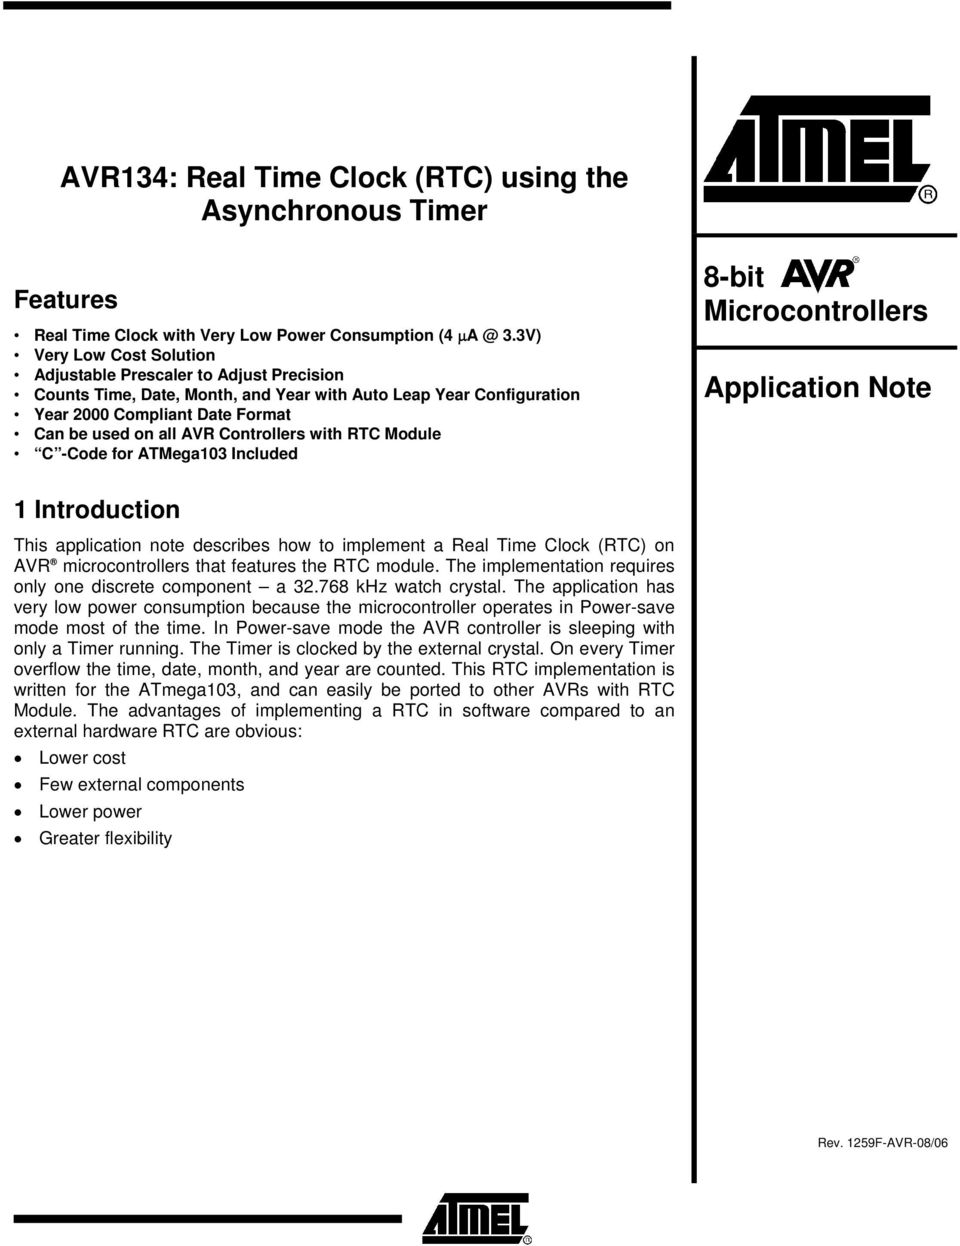 Controllers with RTC Module C -Code for ATMega103 Included 8-bit Microcontrollers Application ote 1 Introduction This application note describes how to implement a Real Time Clock (RTC) on AVR